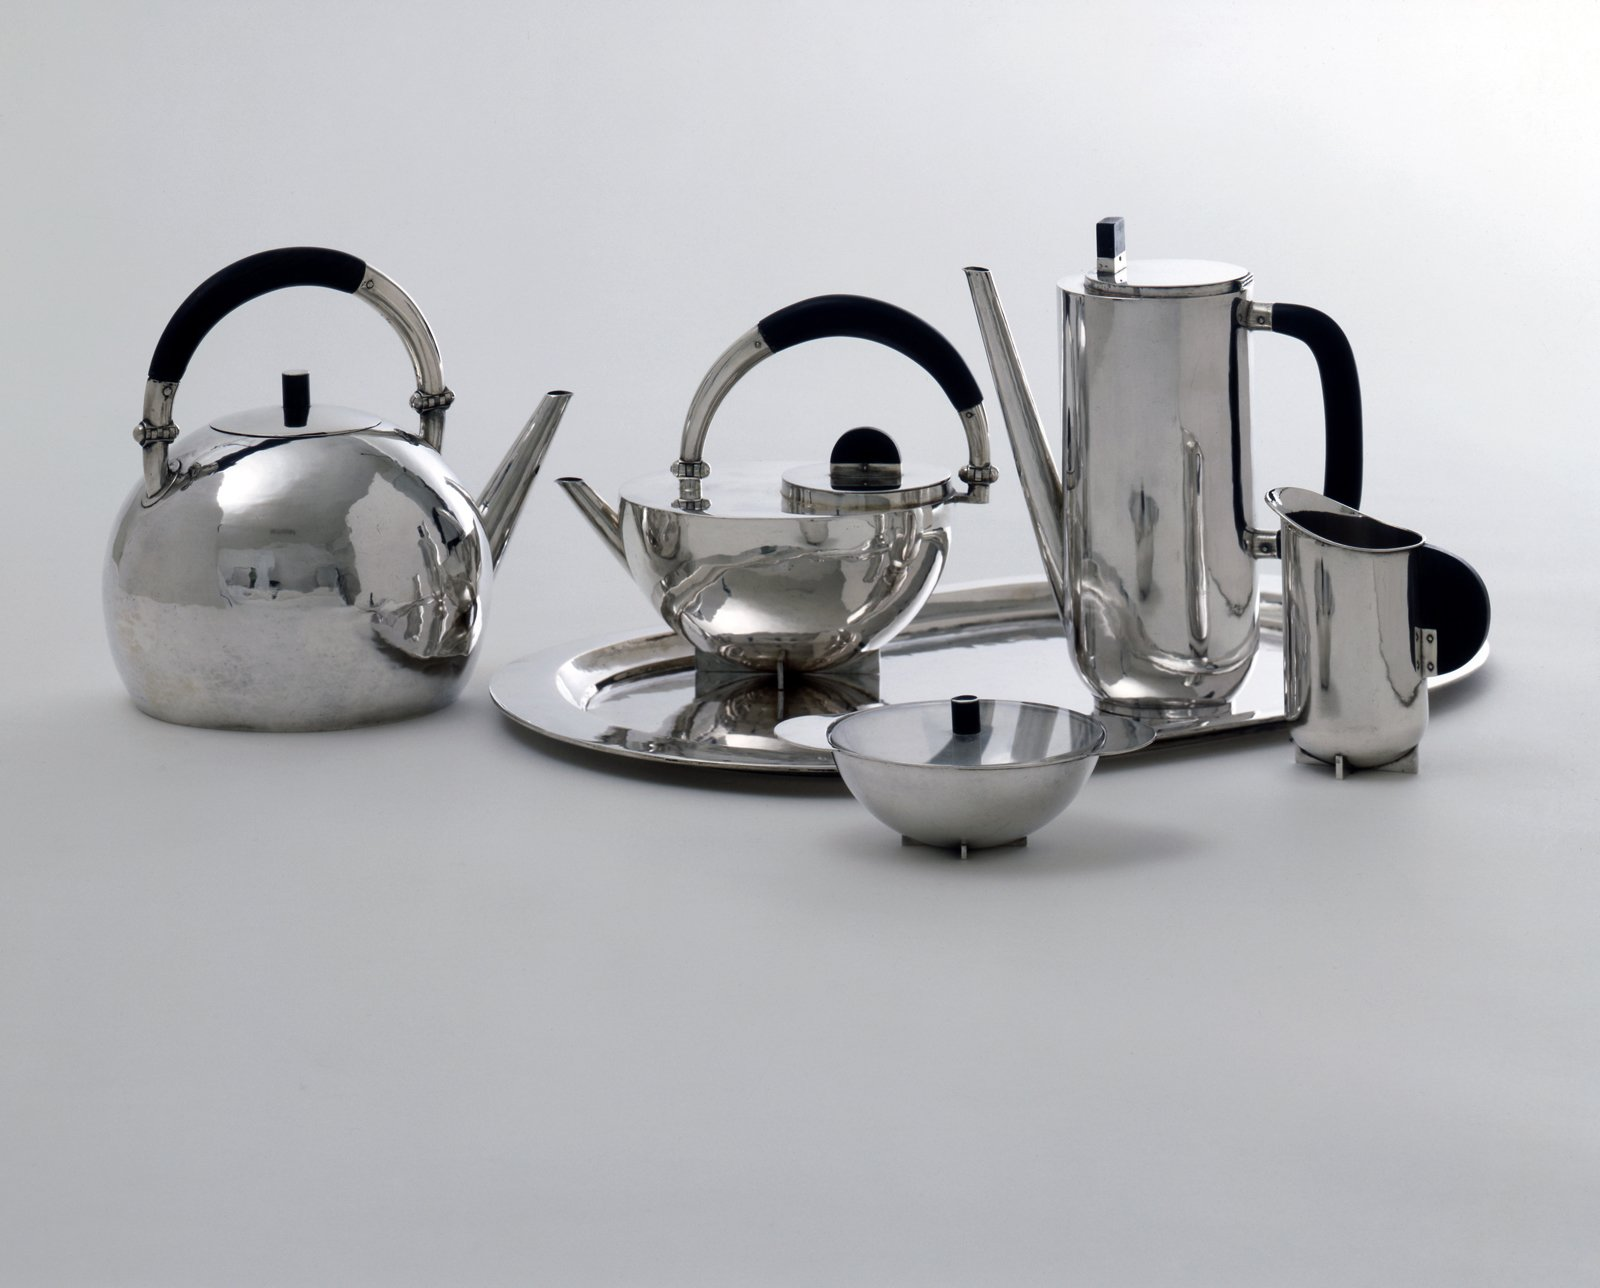 Coffee and tea set by Marianne Brandt. Image courtesy the Museum of Modern Art.  Photo 7 of 10 in 100 Years of Bauhaus: What You Should Know About This Milestone Movement from Final Weekend: Bauhaus at MoMA